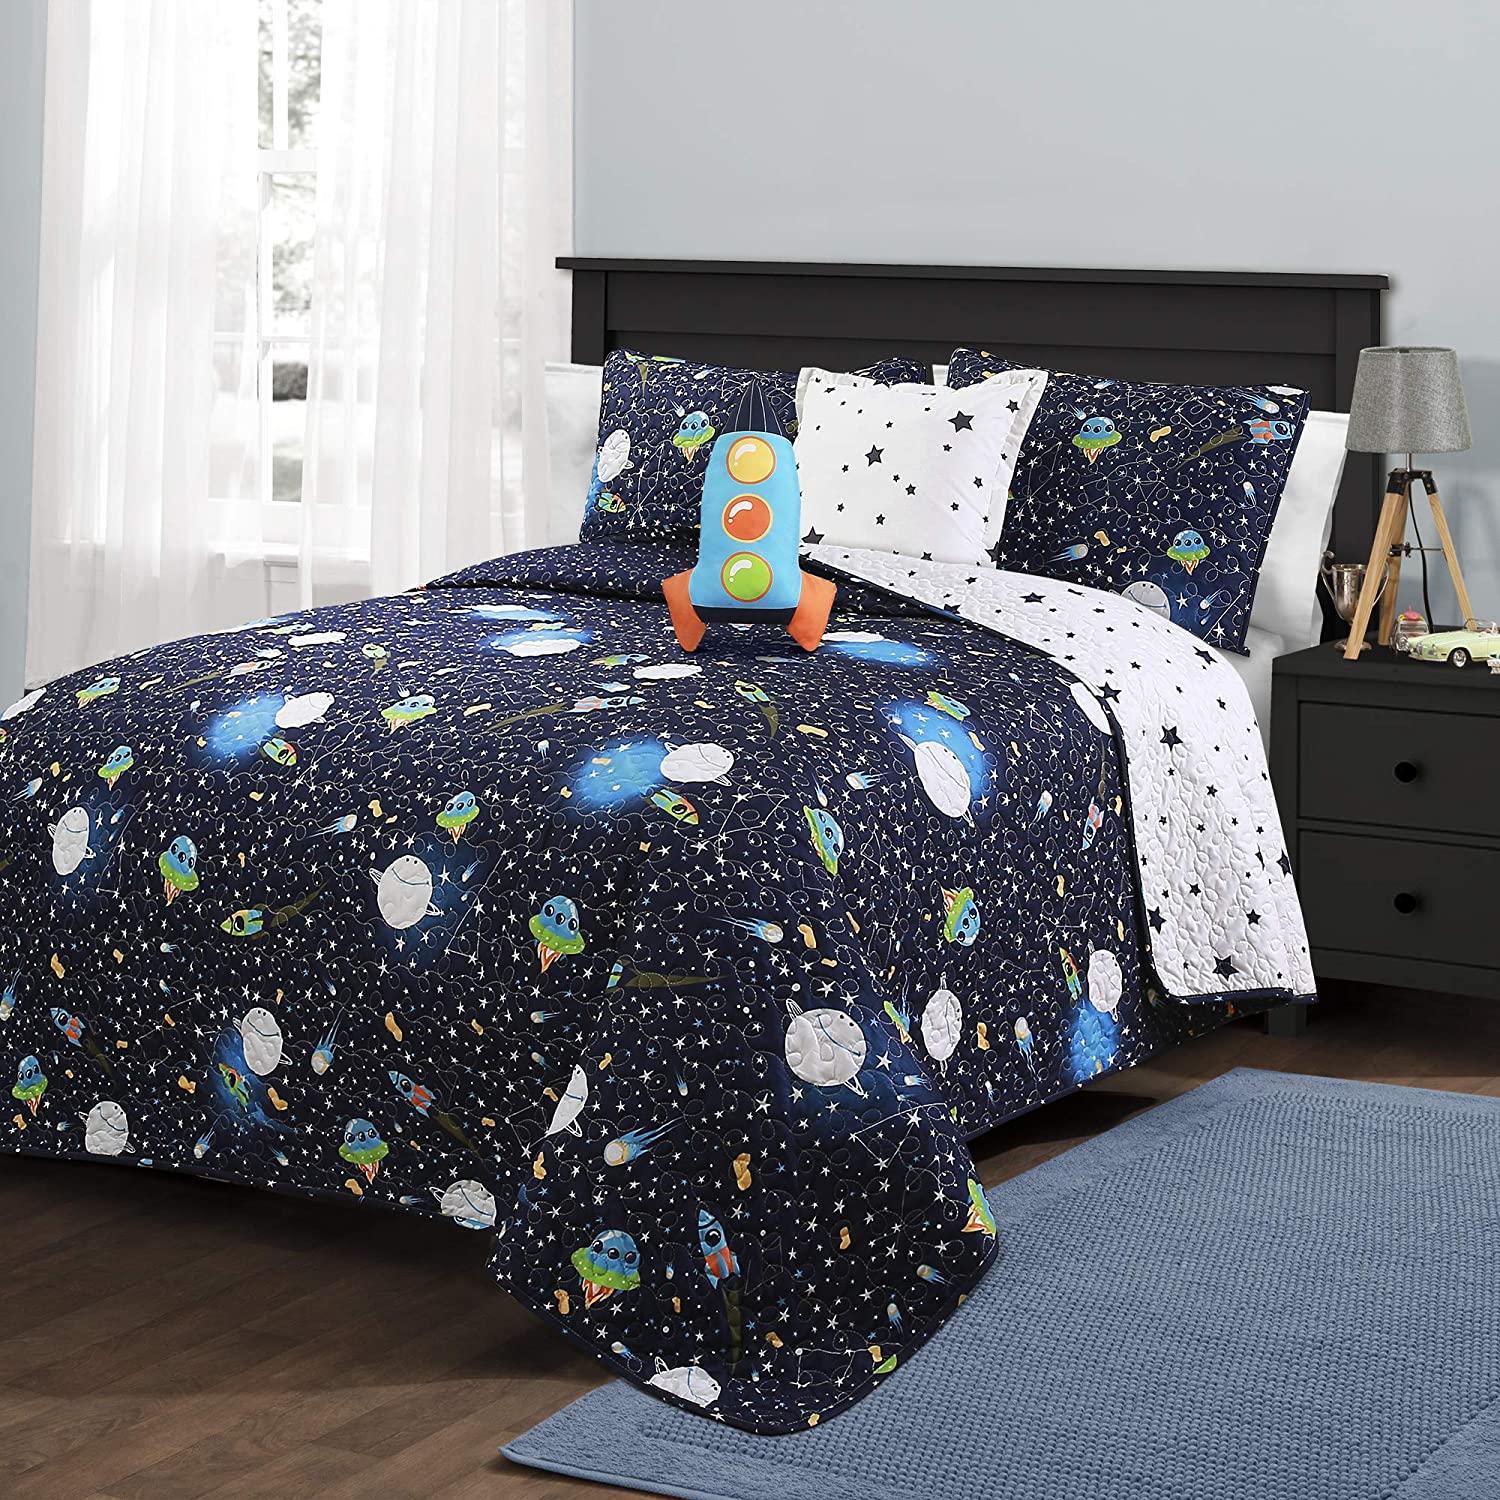 Lush Decor Universe Quilt | Outer Space Stars Galaxy Planet Rocket Reversible 4 Piece Bedding Set for Kids-Full Queen-Navy